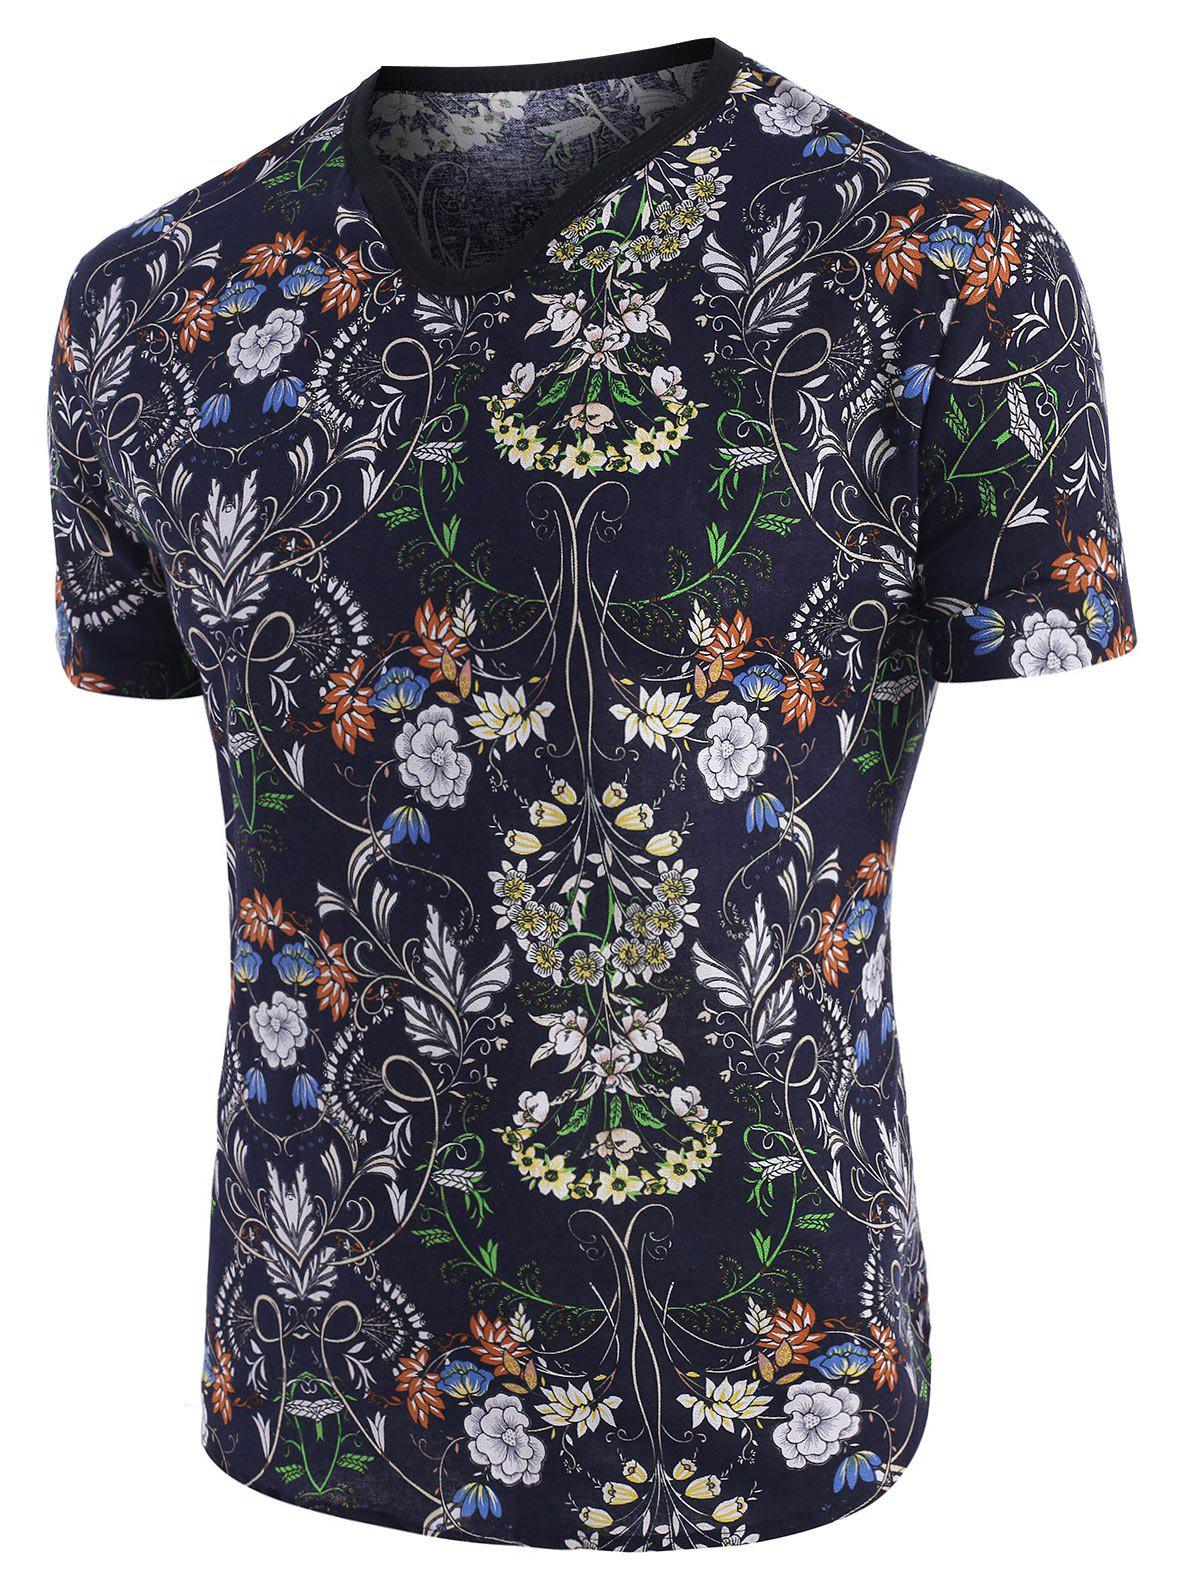 Floral Print Ethnic V Neck Short Sleeve T Shirt - multicolor 3XL